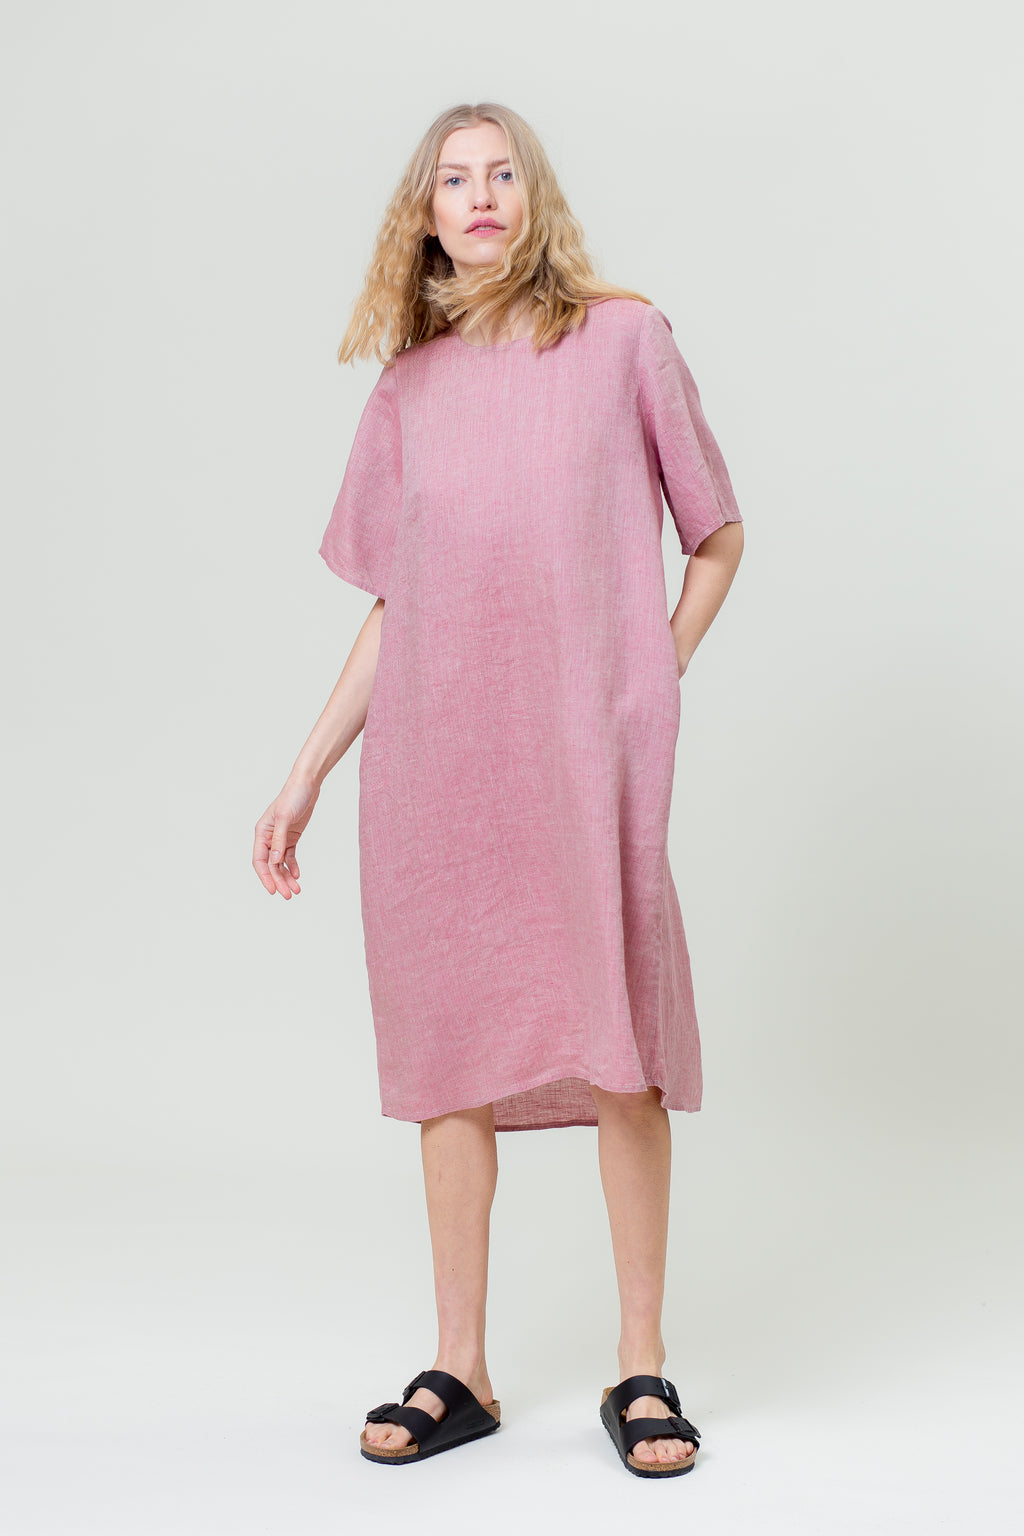 Linen Dress JŪRA rose